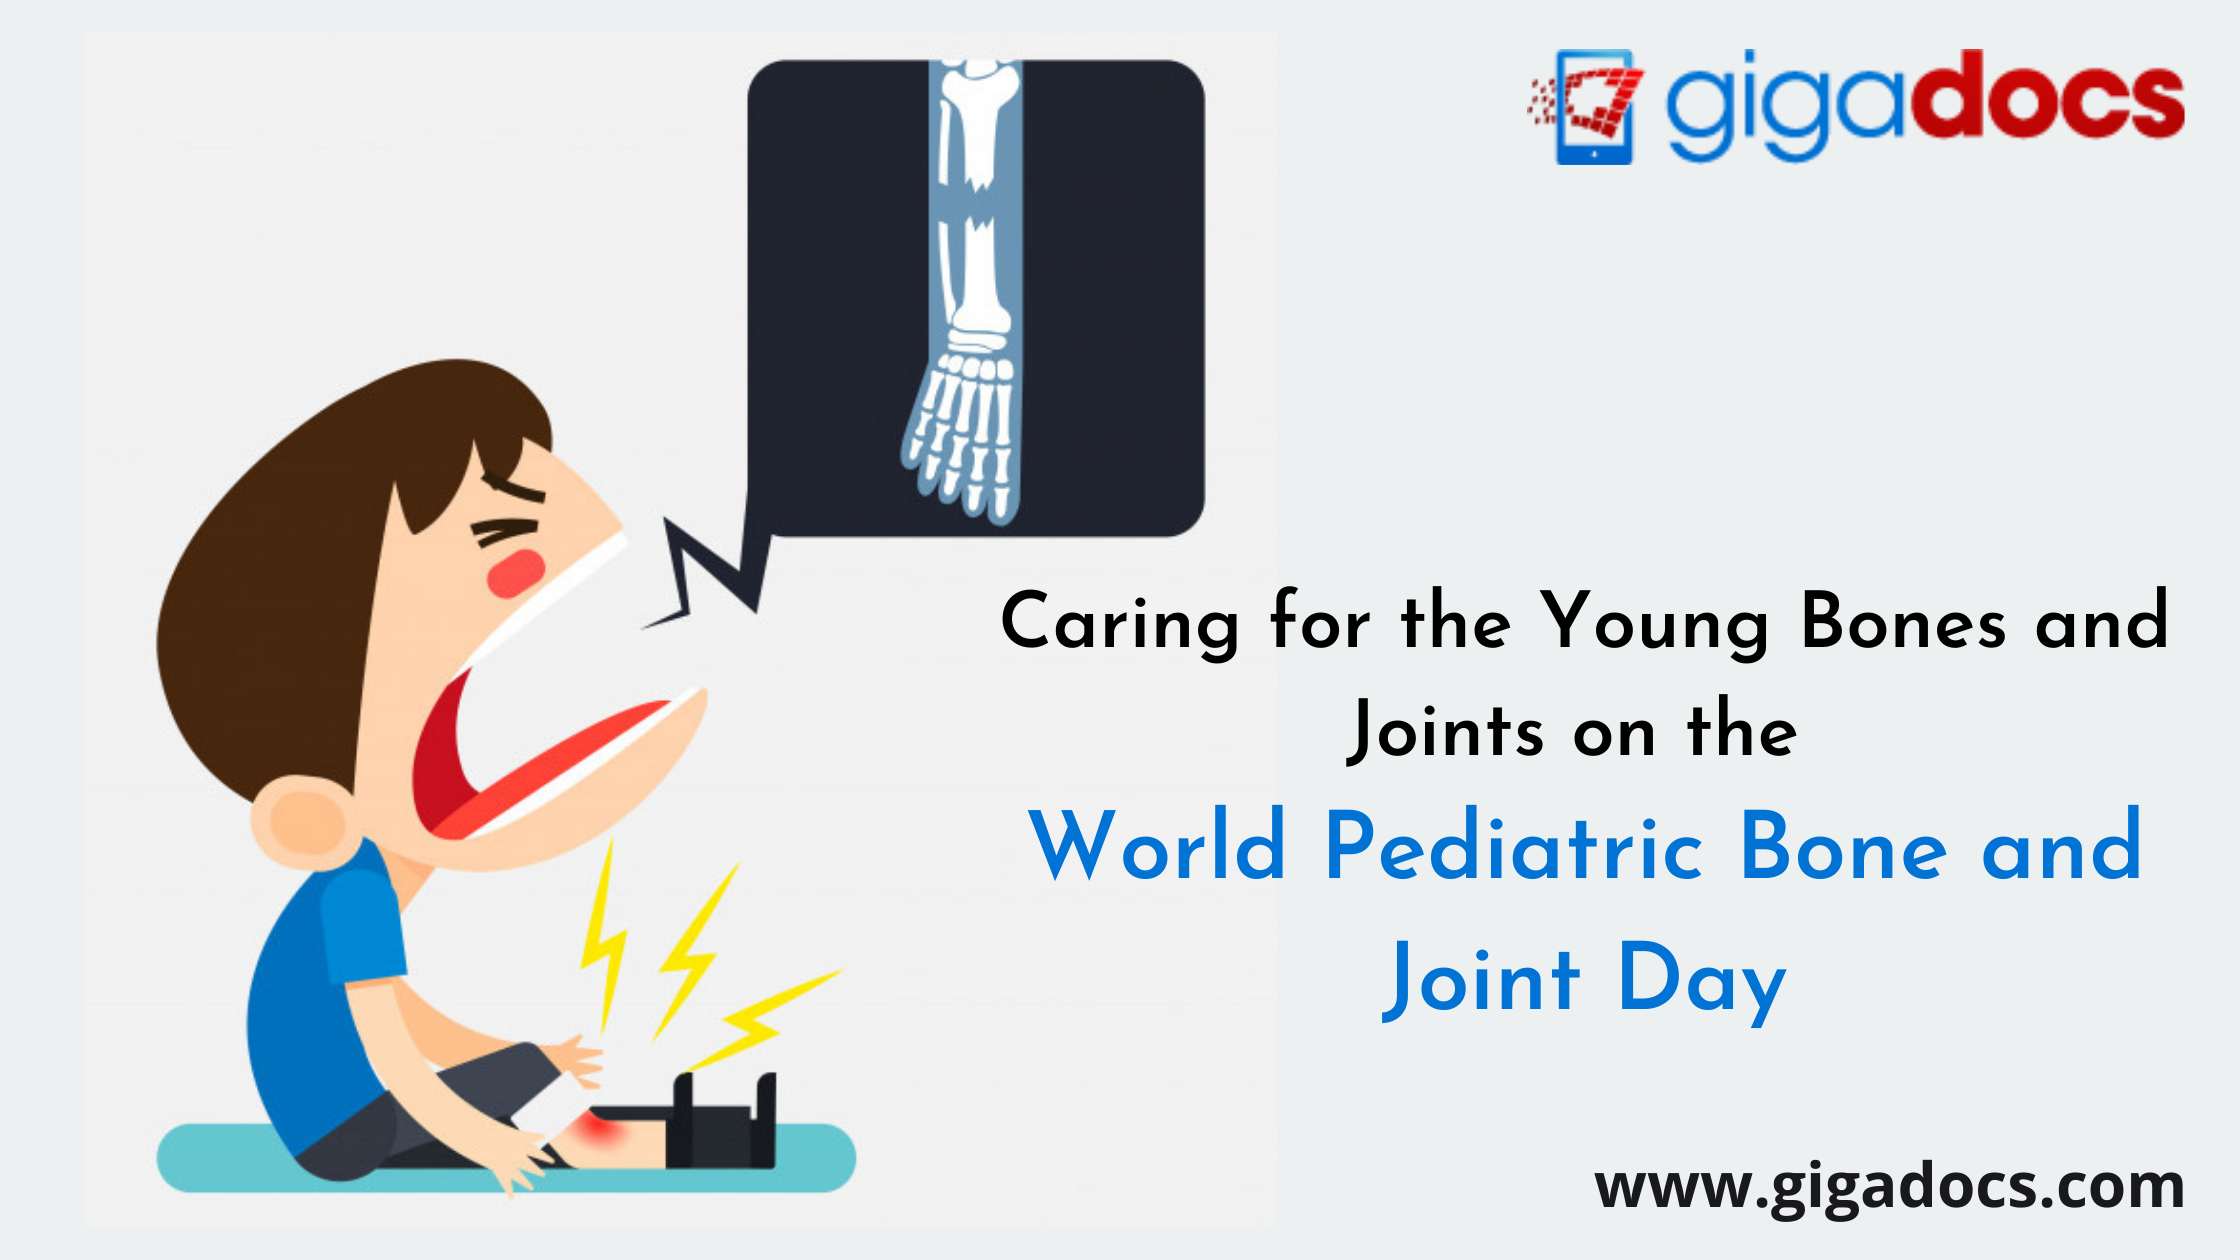 World Pediatric Bone and Joint Day: Care for the Young Bones